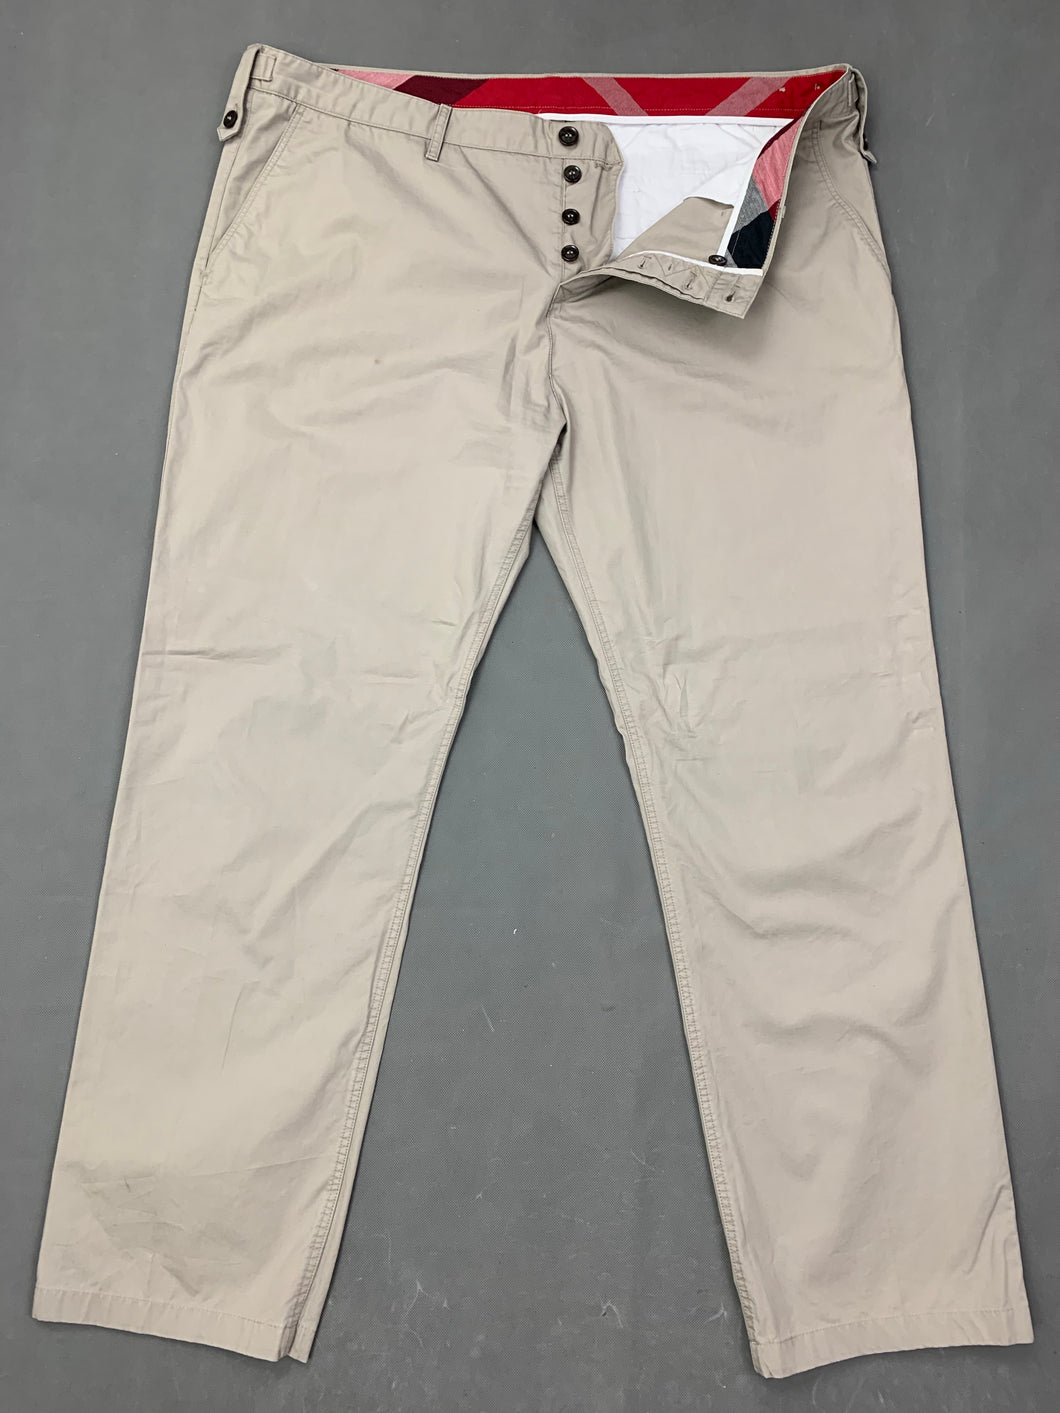 BURBERRY BRIT Mens Beige Cotton CHINOS / TROUSERS Size Waist 40